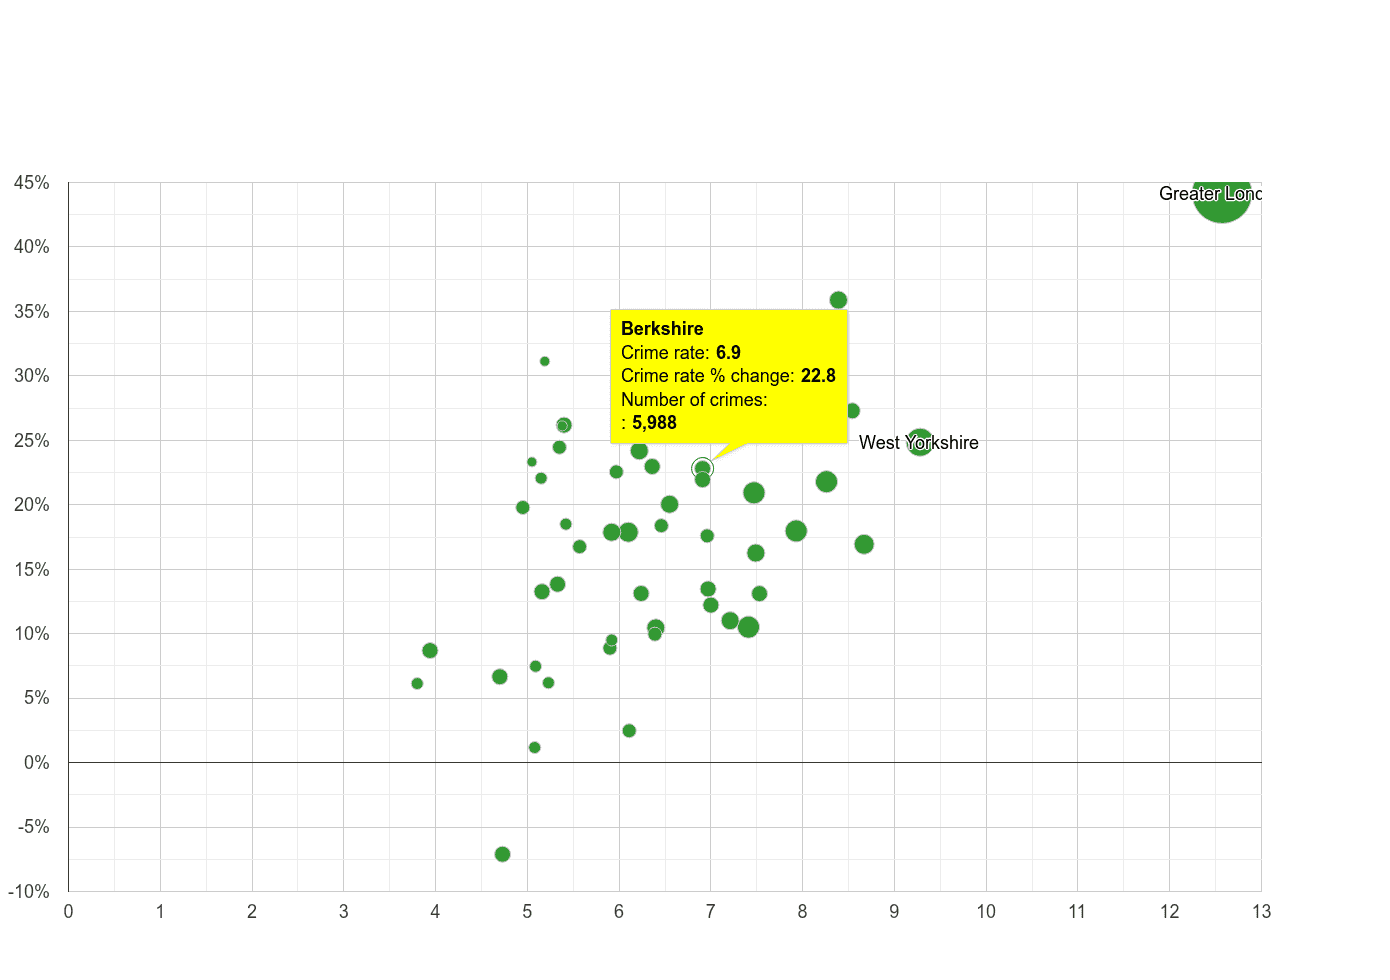 Berkshire other theft crime rate compared to other counties